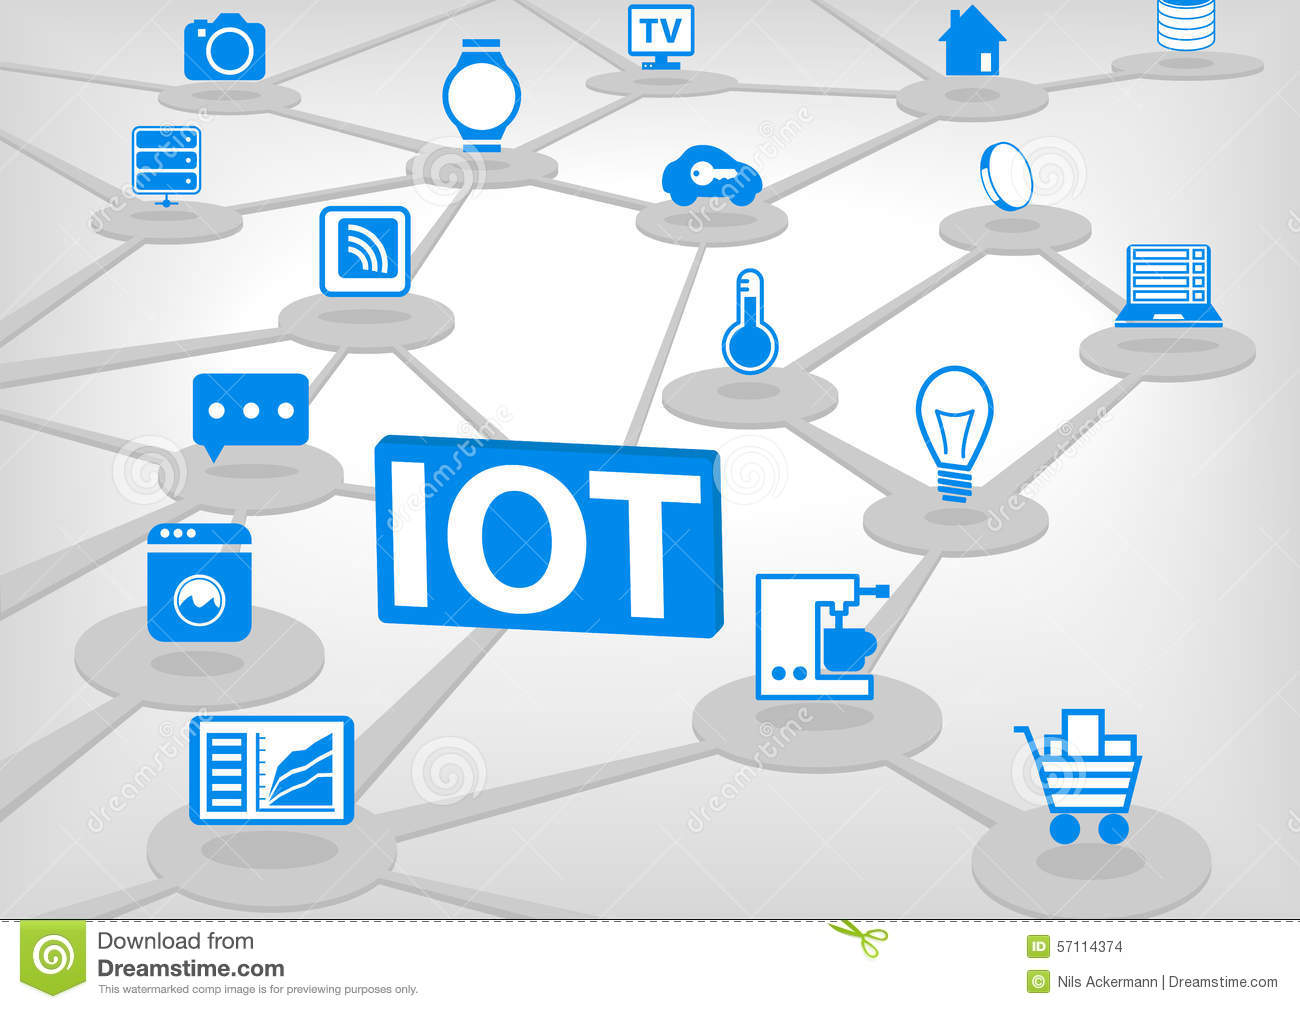 iot internet everything illustration d connection various objects devices blue icons light grey background 57114374